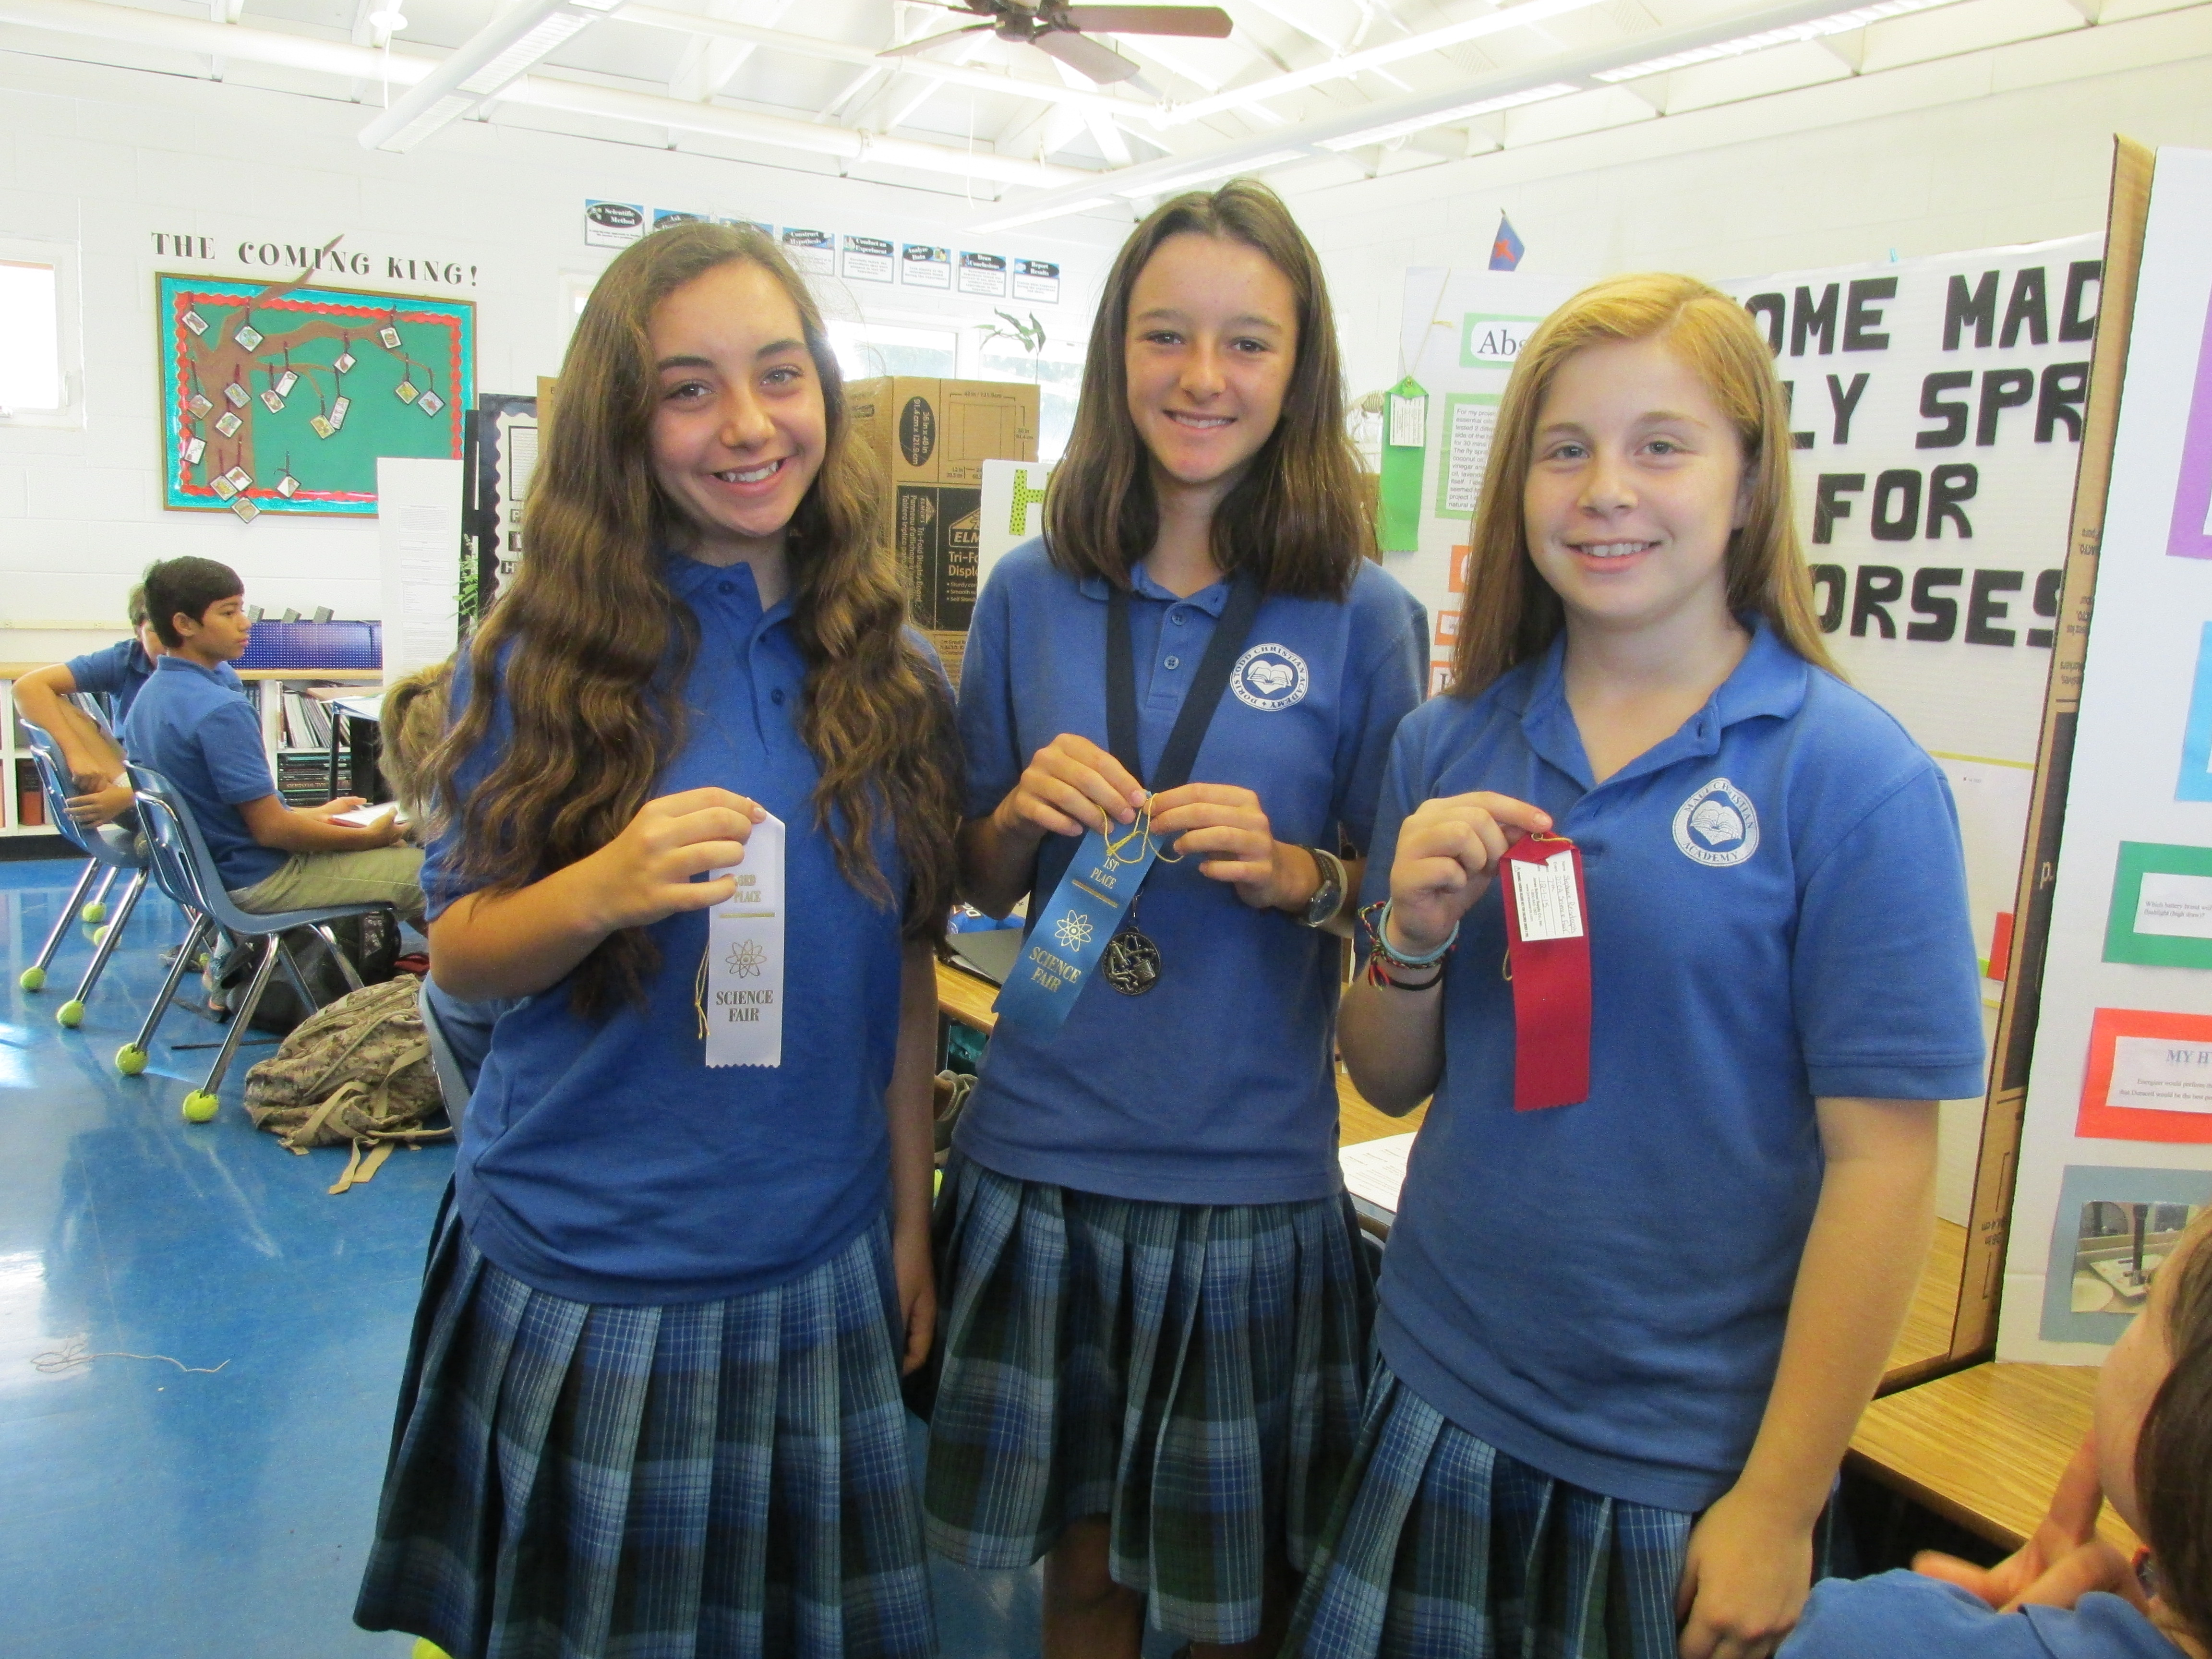 Doris Todd Science Fairseventhgrade winners(left to right): Natalie Boody, second place; Keala Bouwens, first place and grand champion; and Stephanie Reisdorph, thirdplace.